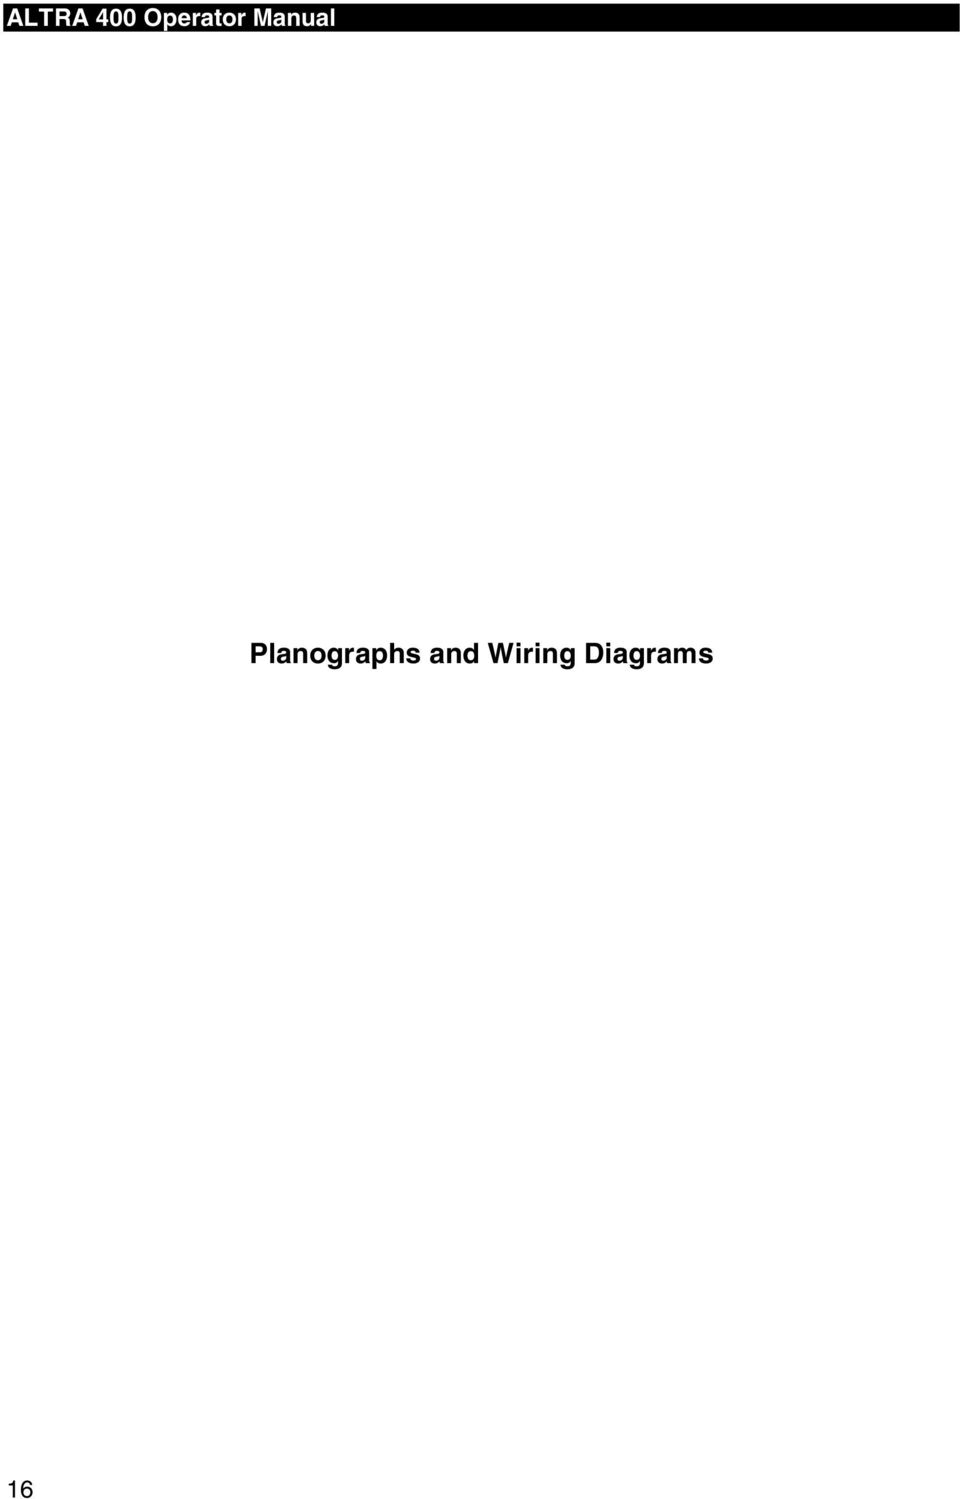 Altra 400 Operator Manual Planographs And Wiring Diagrams Pdf 230 Volt Diagram 2 Final Assembly All Altras W Head Part Description Specific Use If Any A Tank Assy Model 60358a Sp